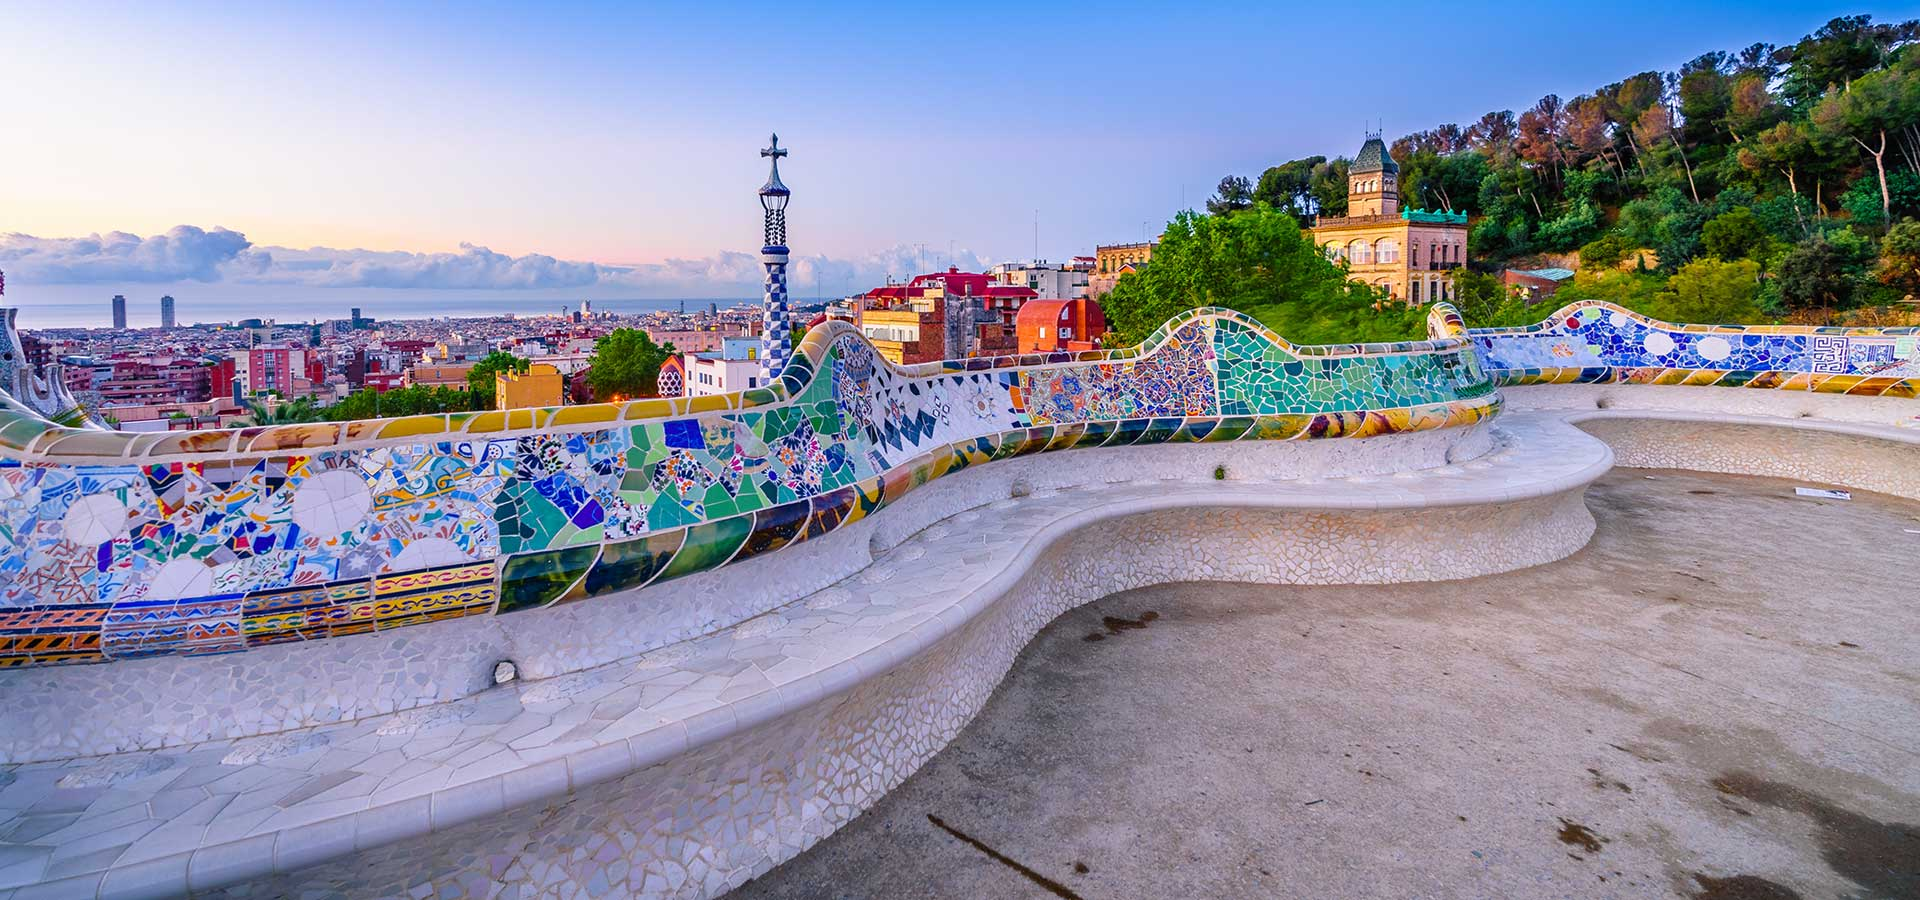 Weekend City: Guide to Barcelona, Spain